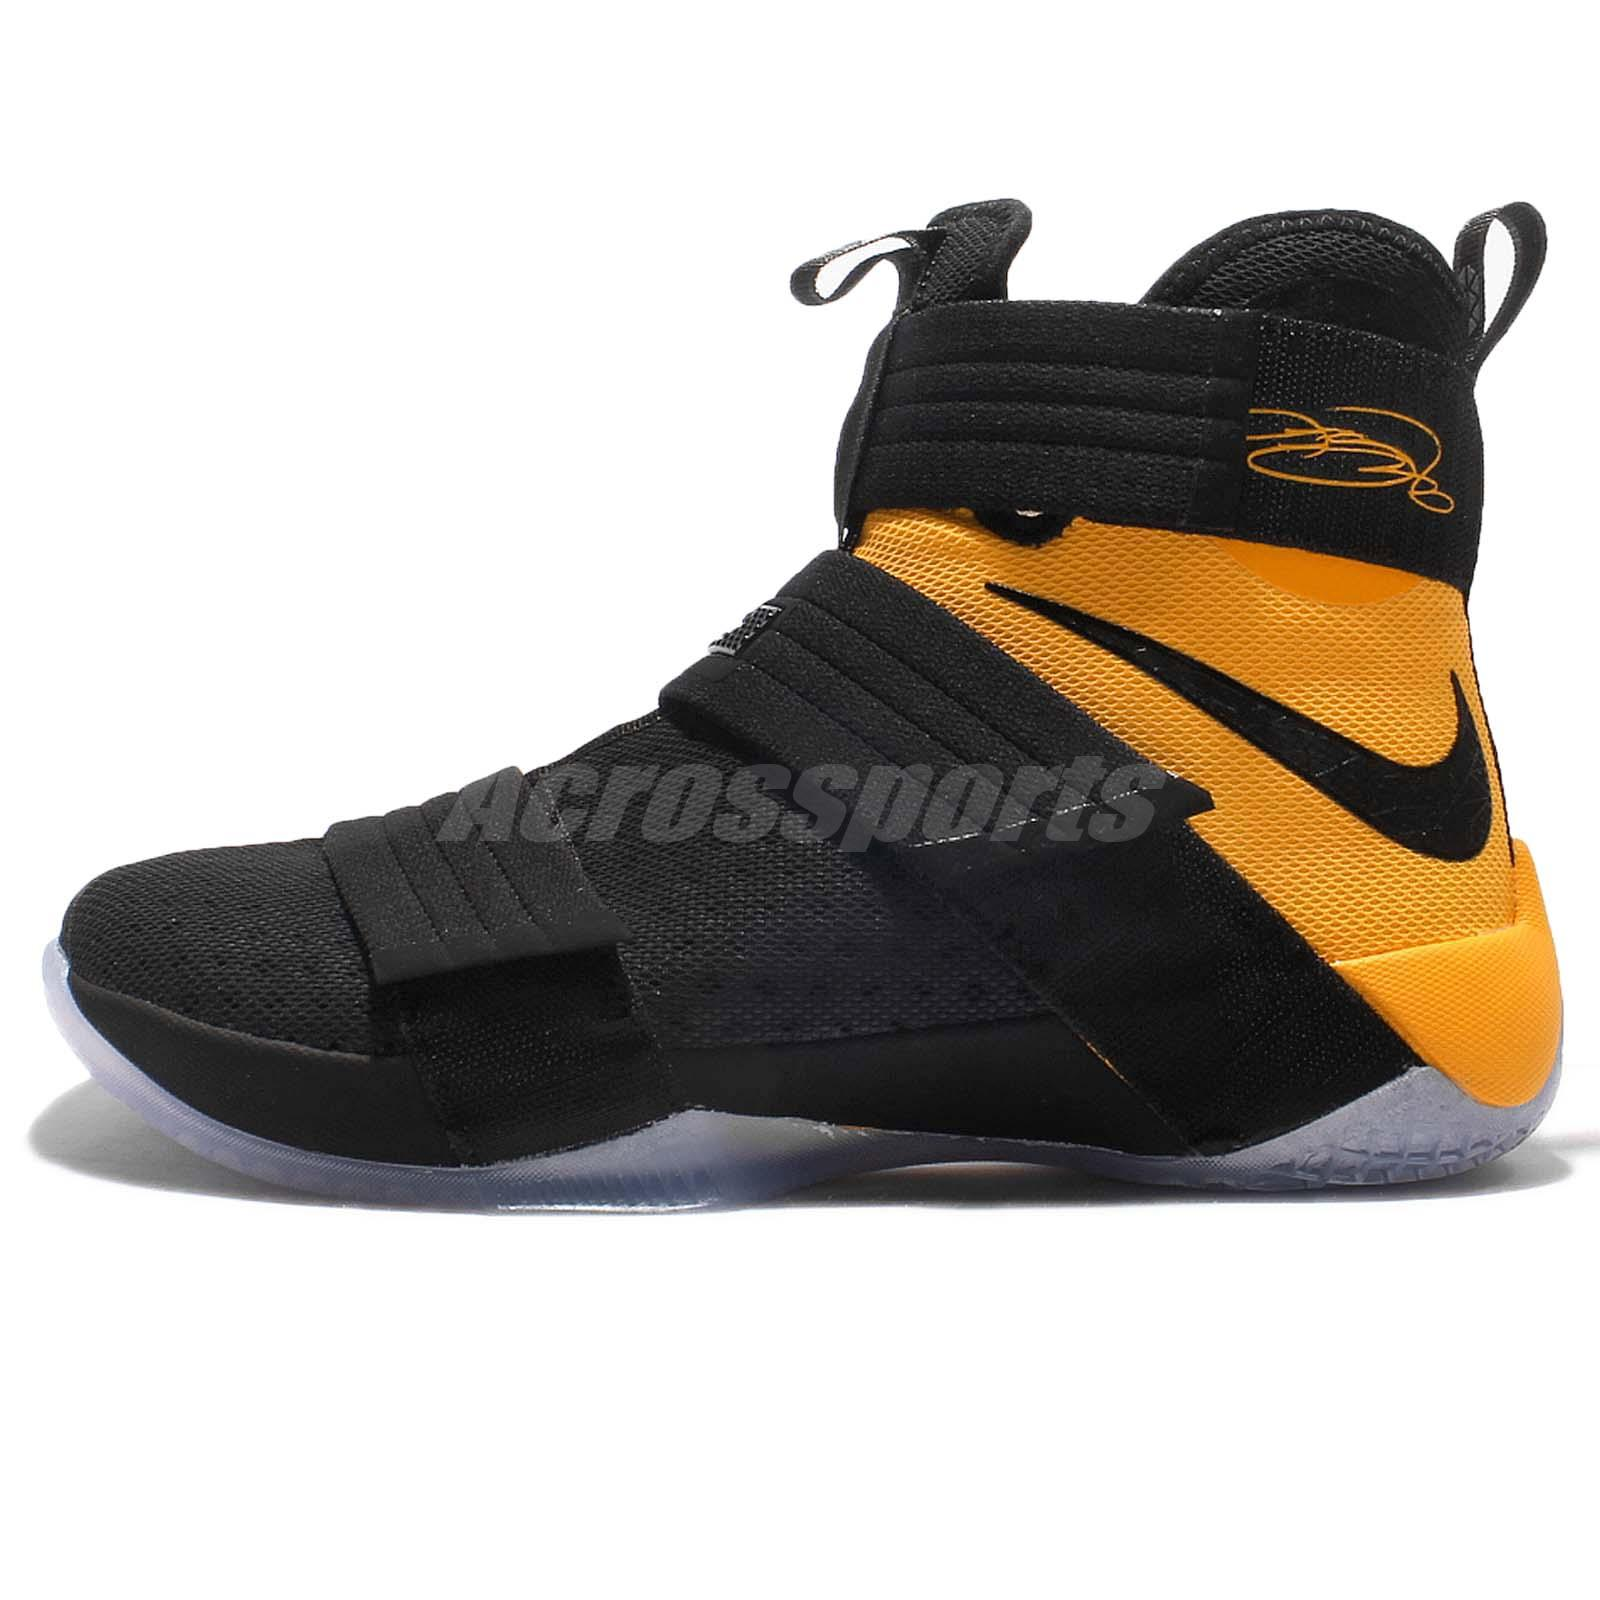 44085675a26 ... Nike Lebron Soldier 10 SFG EP X James Black Gold Men Basketball Shoes  852419-007 ...